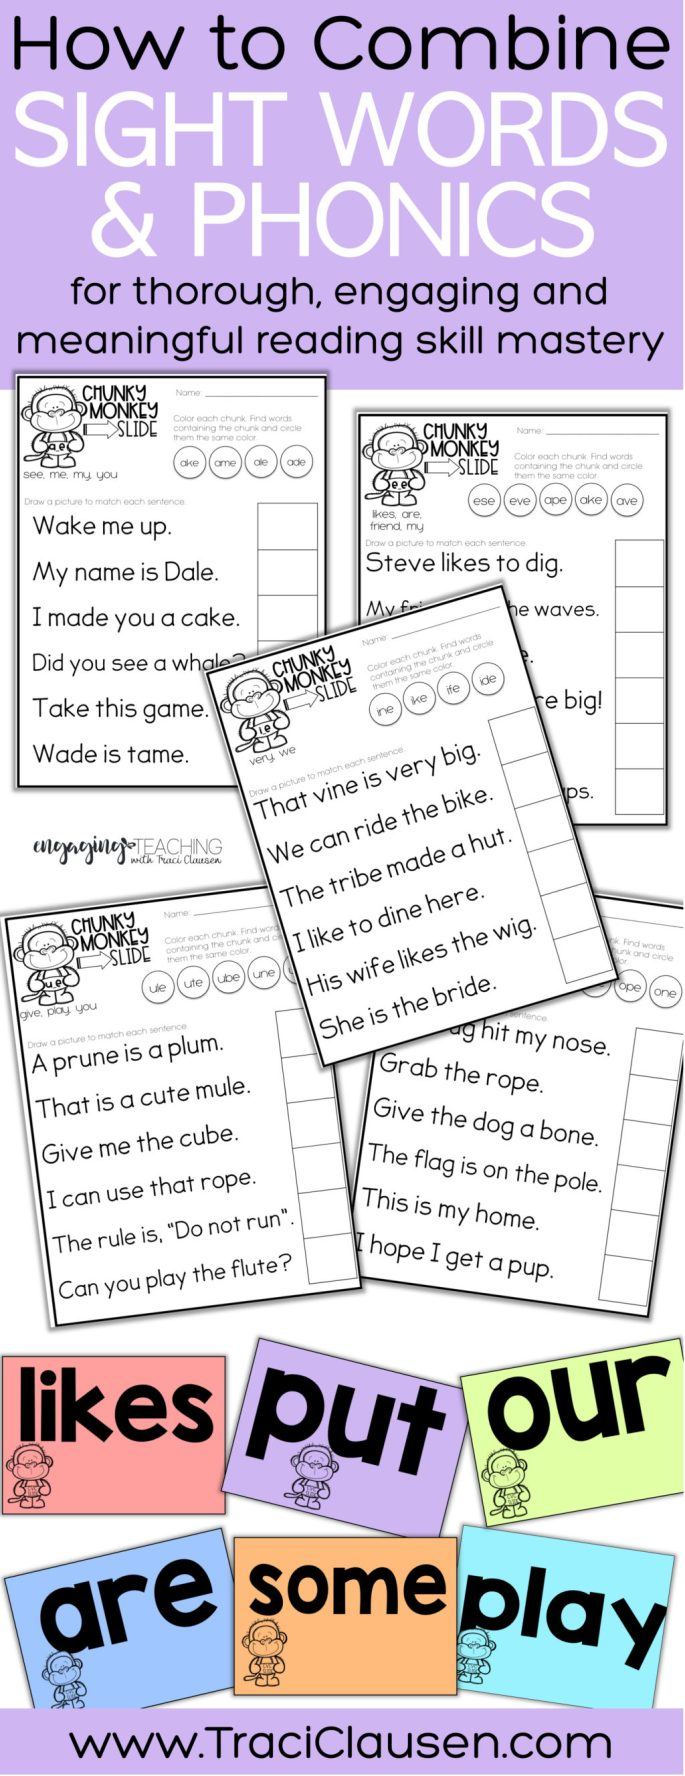 Chunky Monkey samples sheets and sight word cards